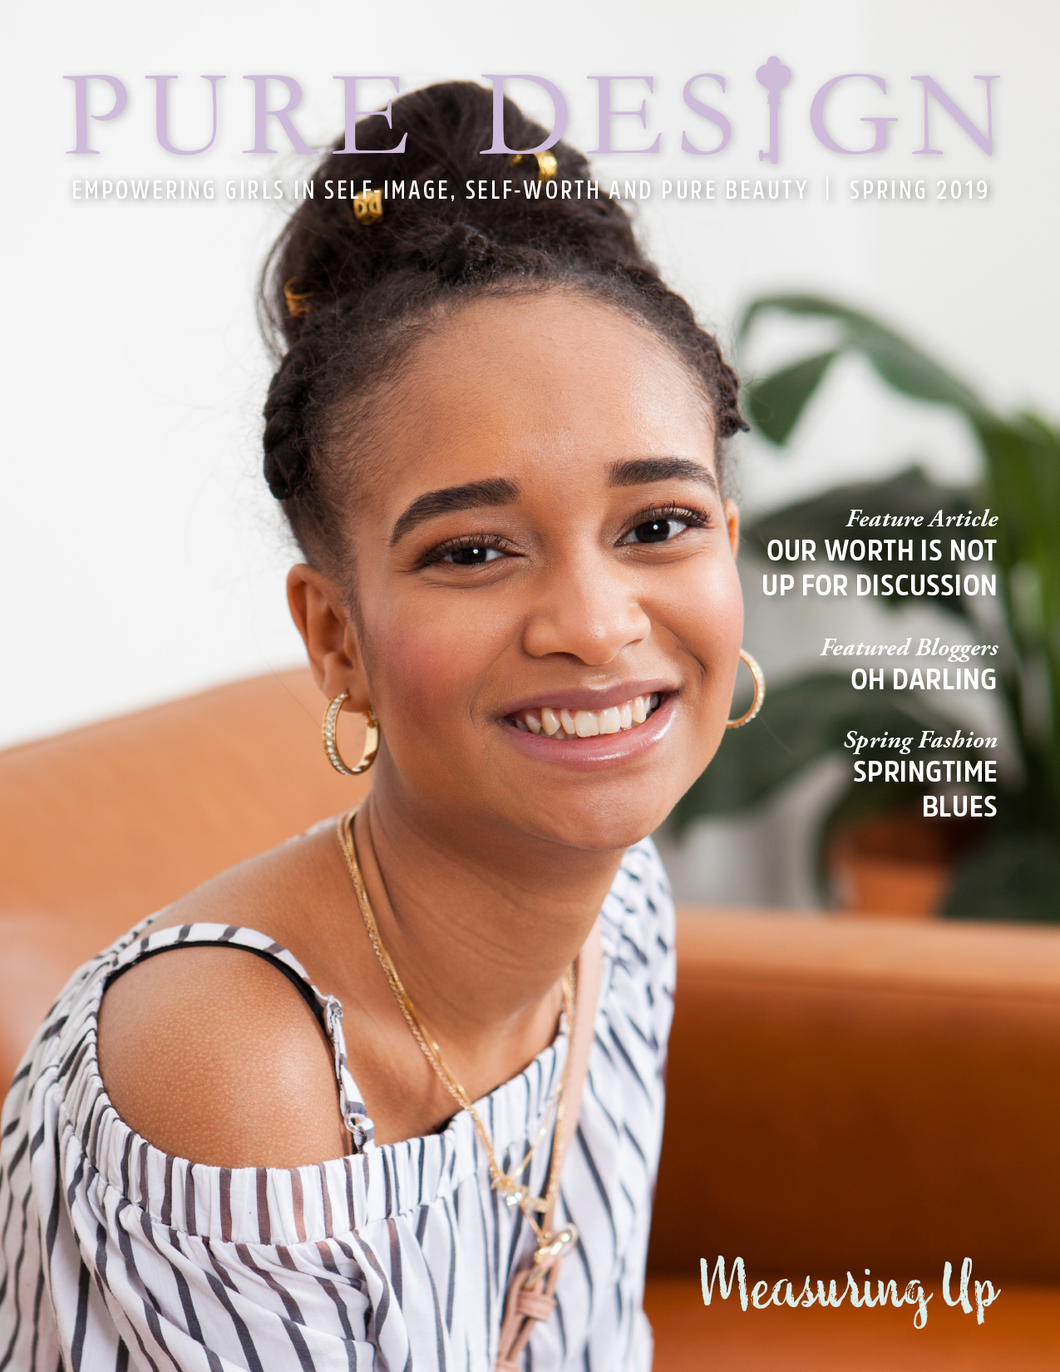 Pure Design Teen Magazine - 2019 Spring - Measuring Up